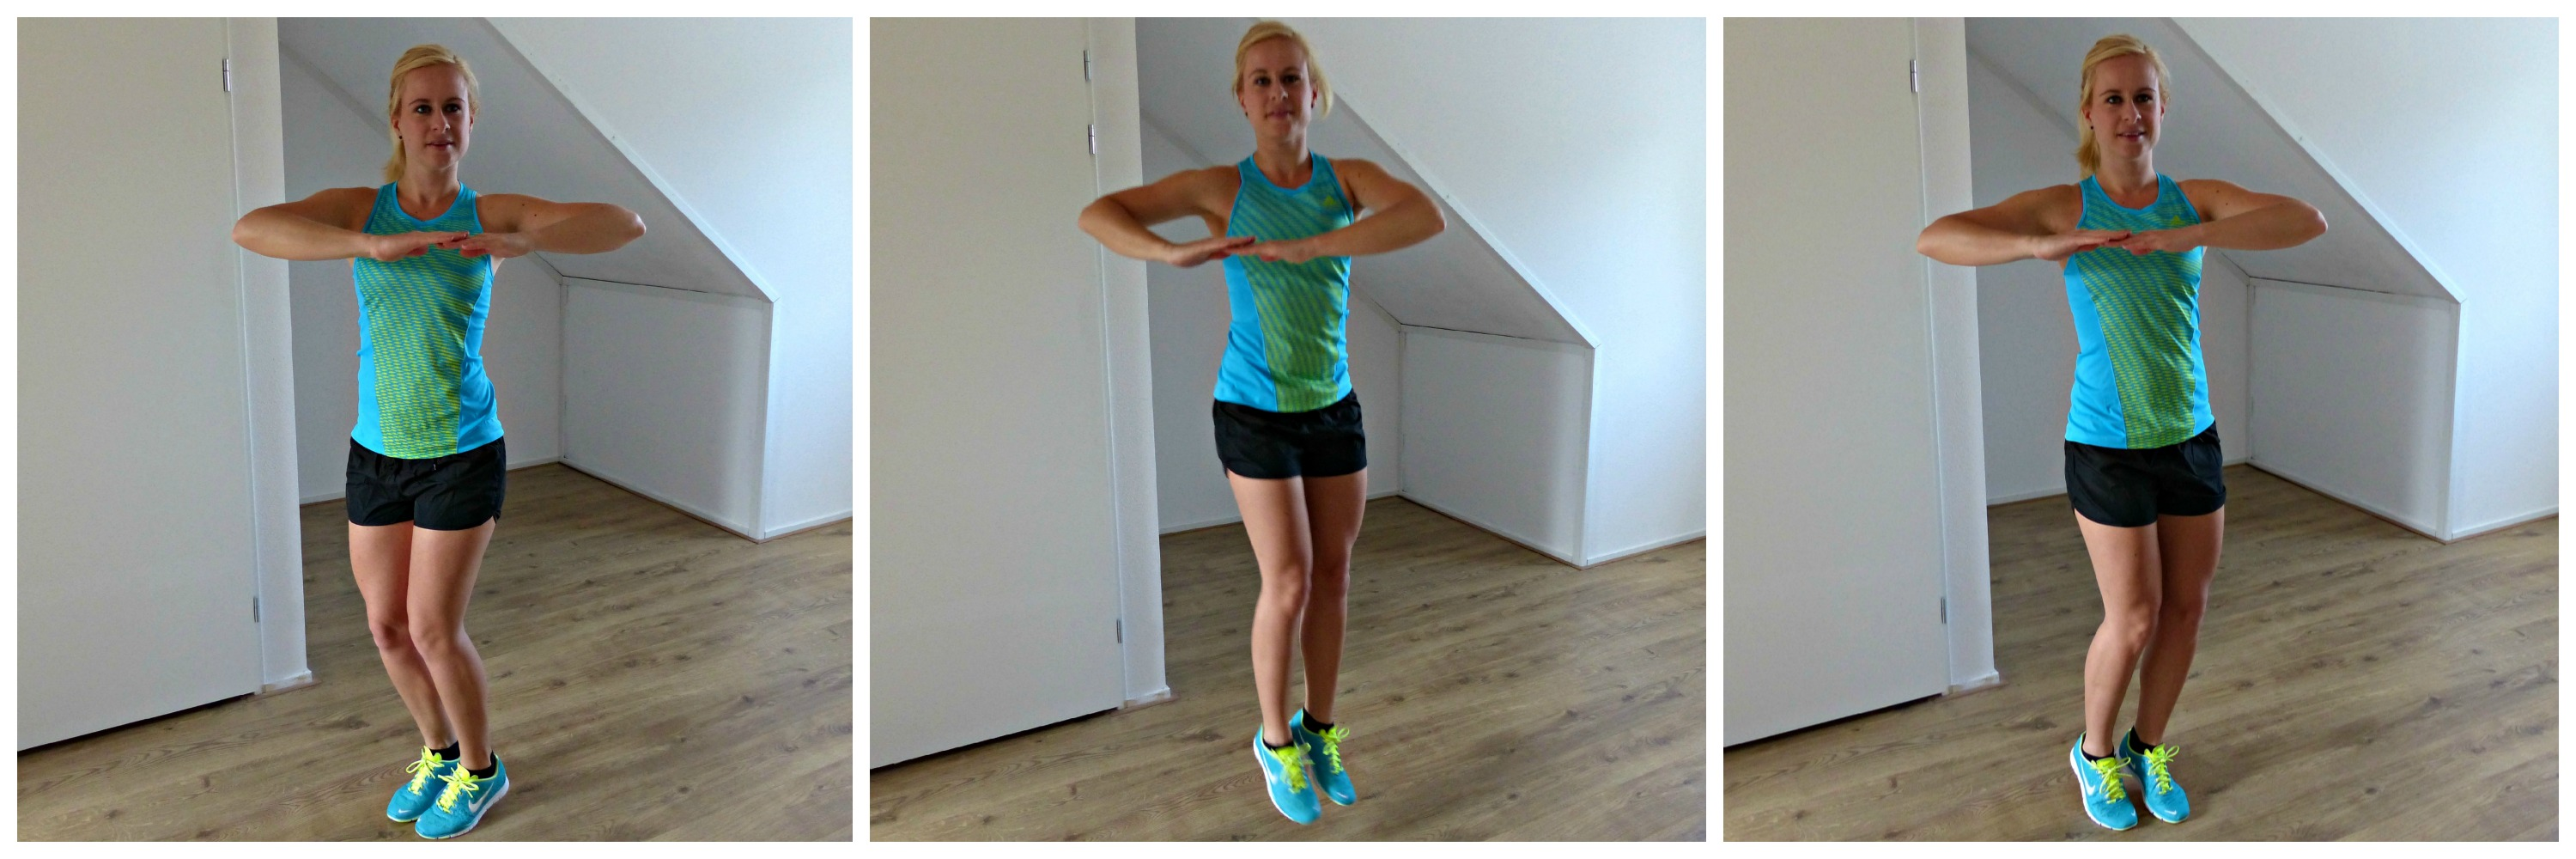 Full body workout vetverbranding en lovehandles optima vita - Voor thuis ...